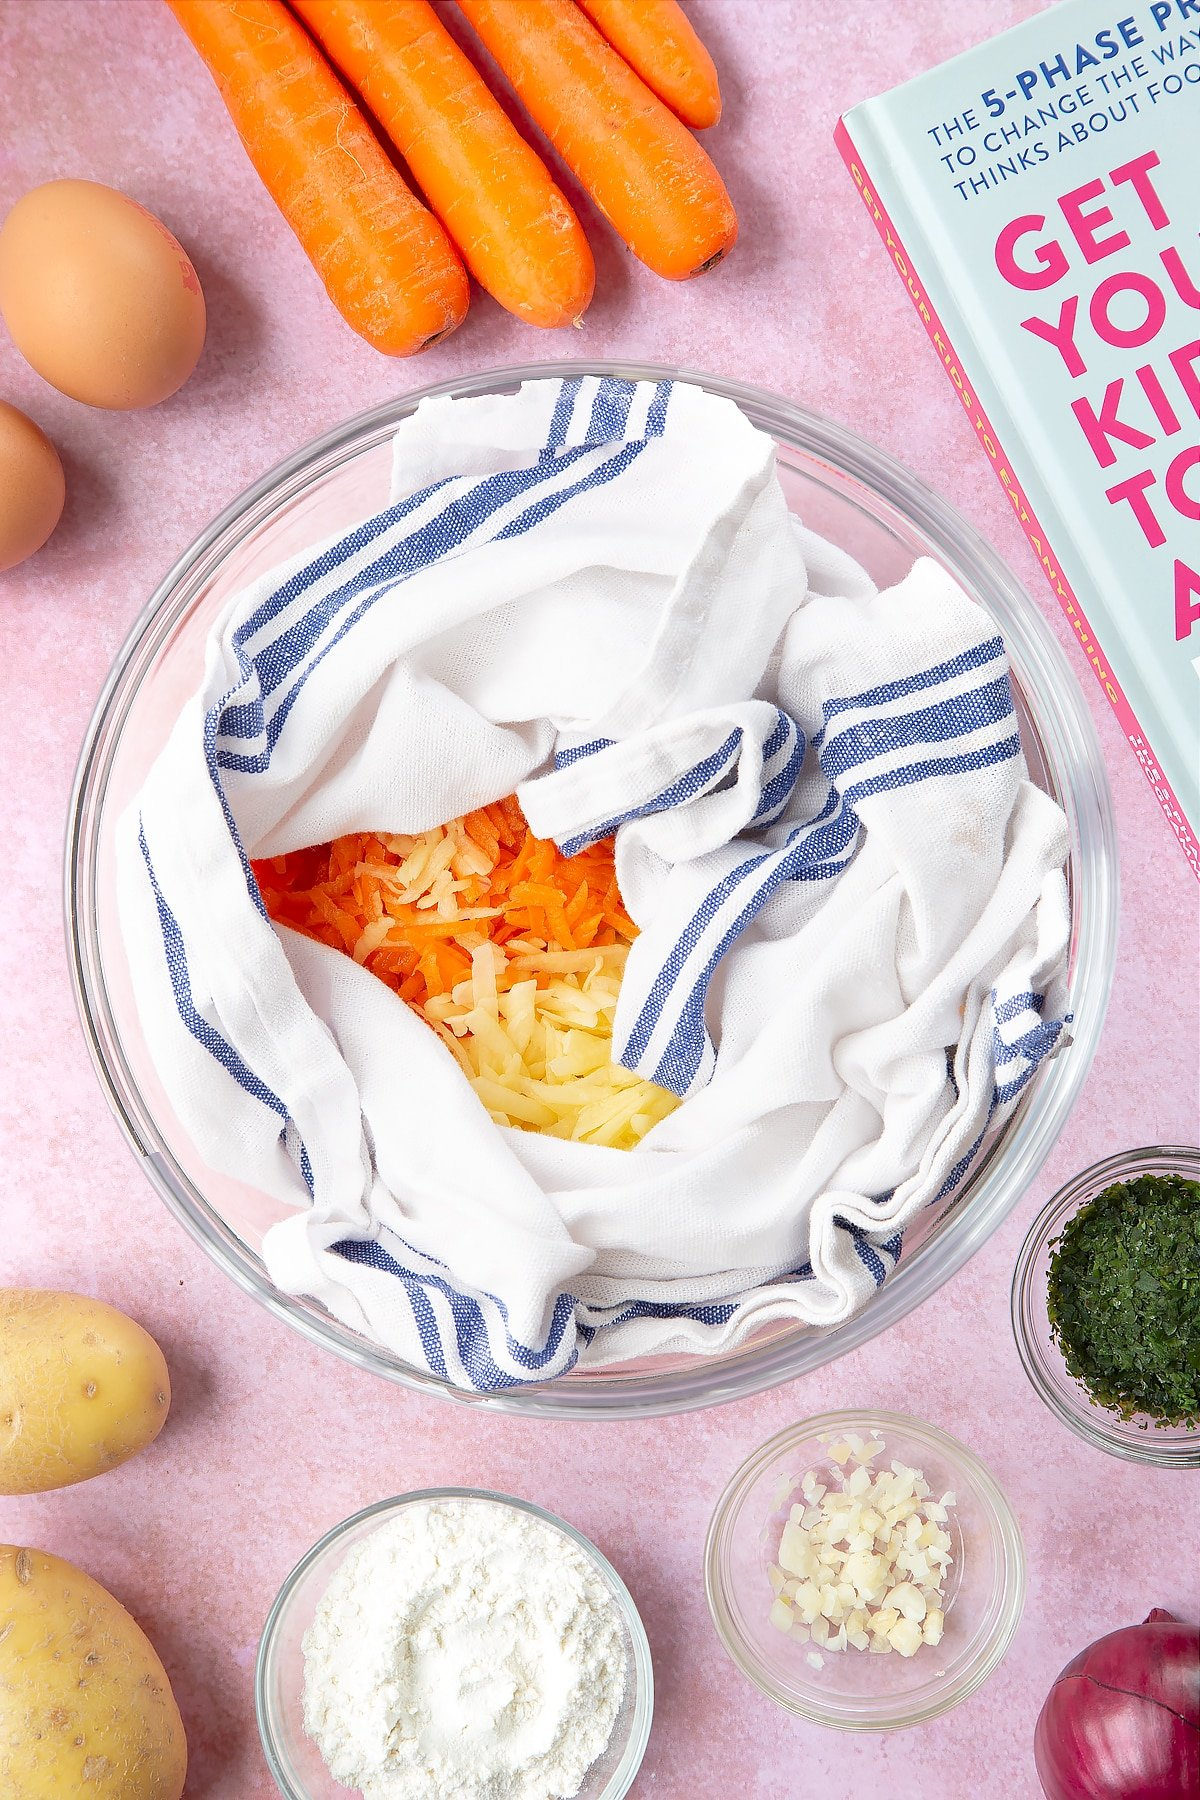 Grated carrot, red onion and potato in side a white and blue tea towel in a mixing bowl. The bowl is surrounded by ingredients to make carrot patties.